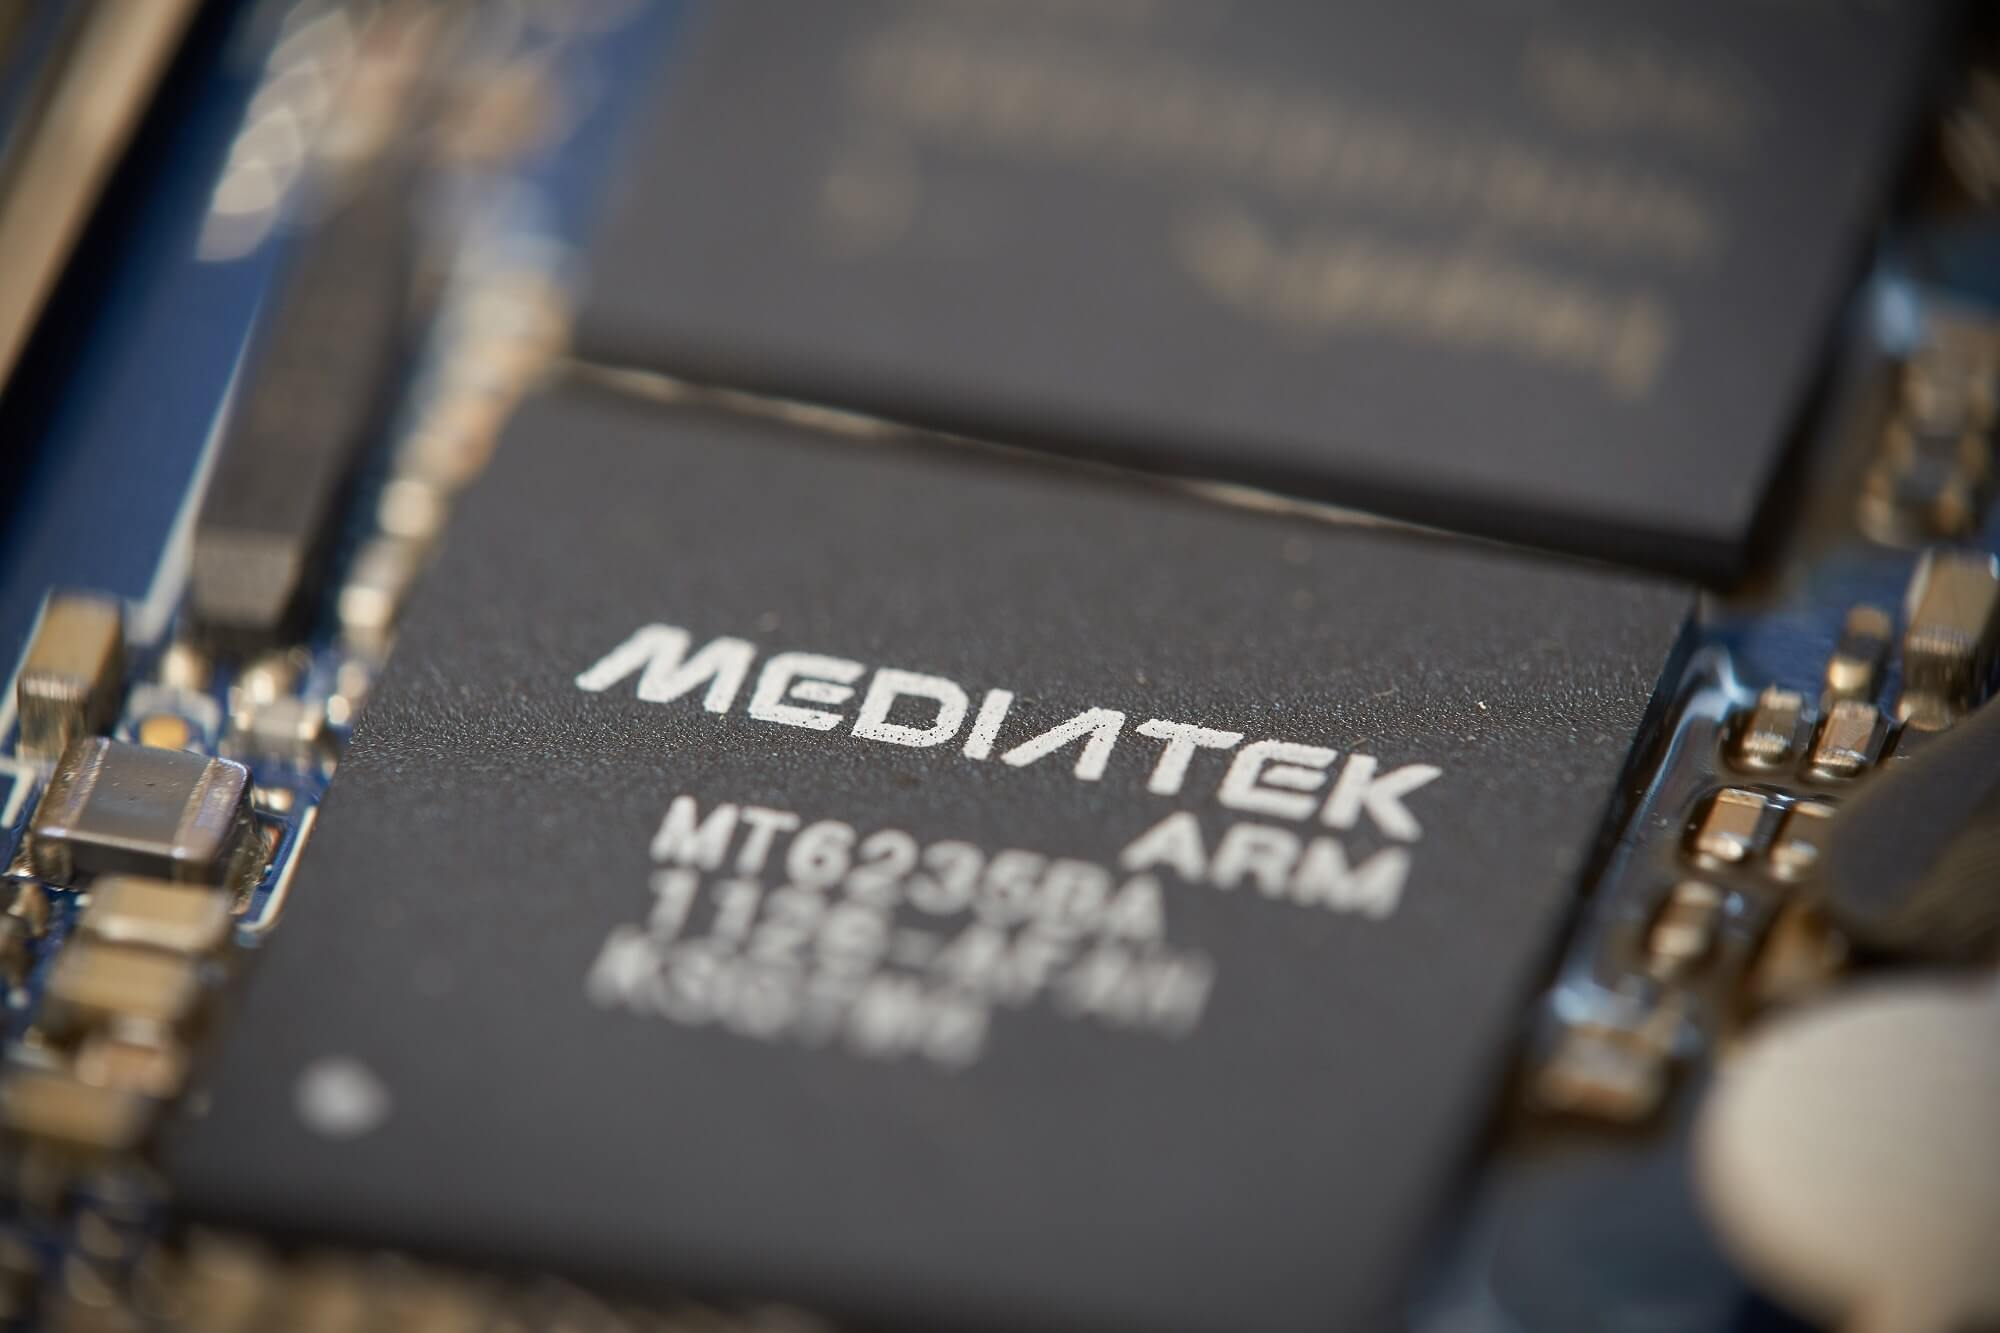 MediaTek caught cheating on benchmarks, says everyone is doing it